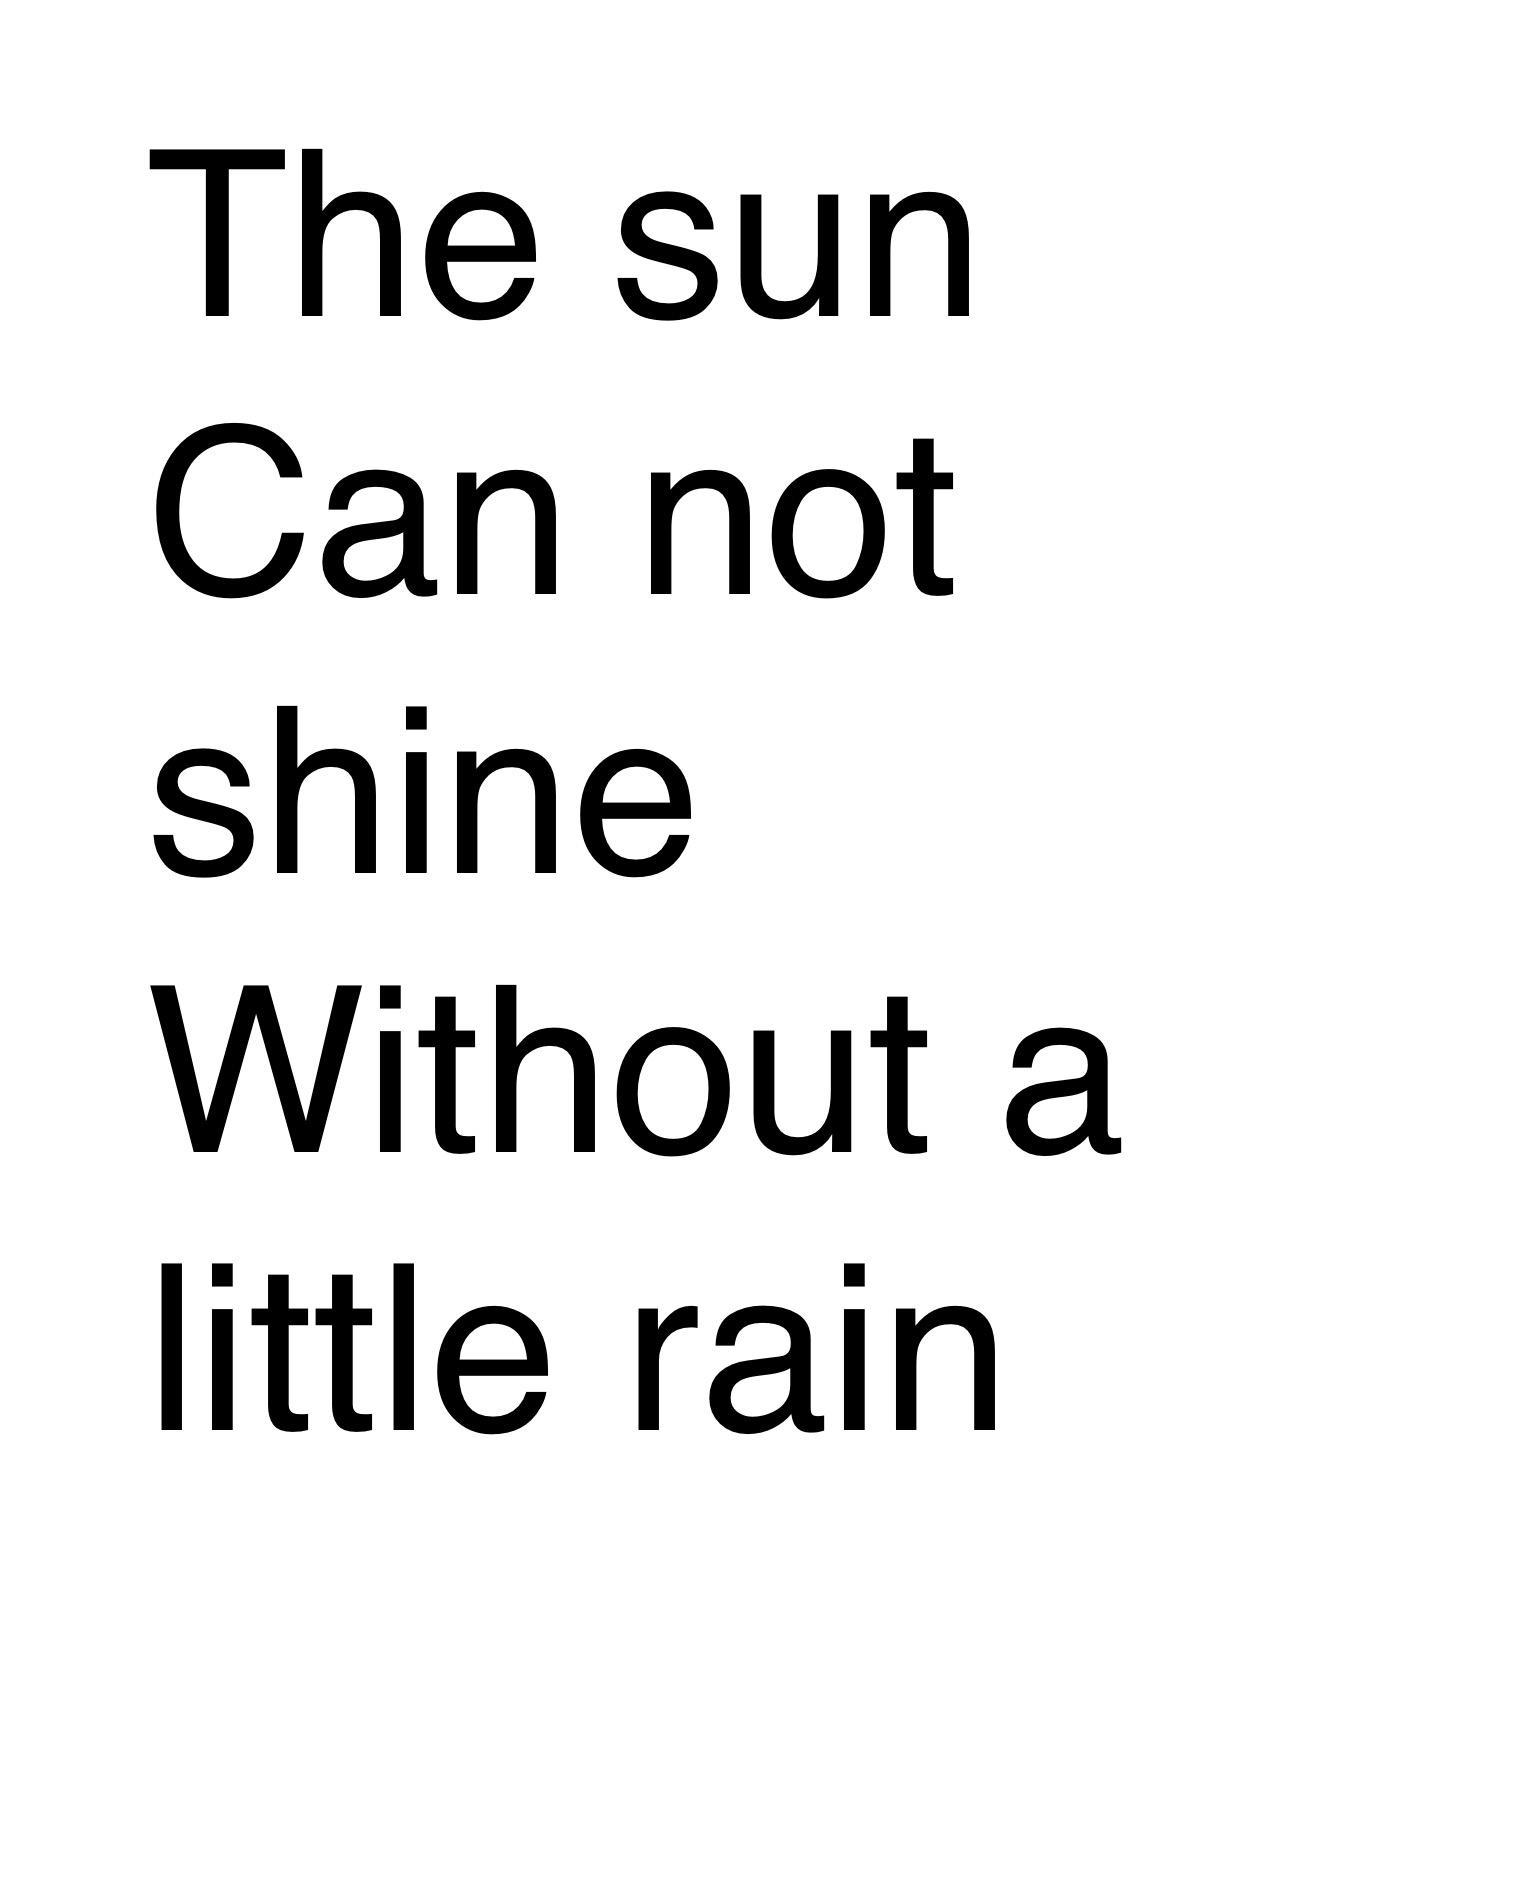 The sun can not shine without a little rain